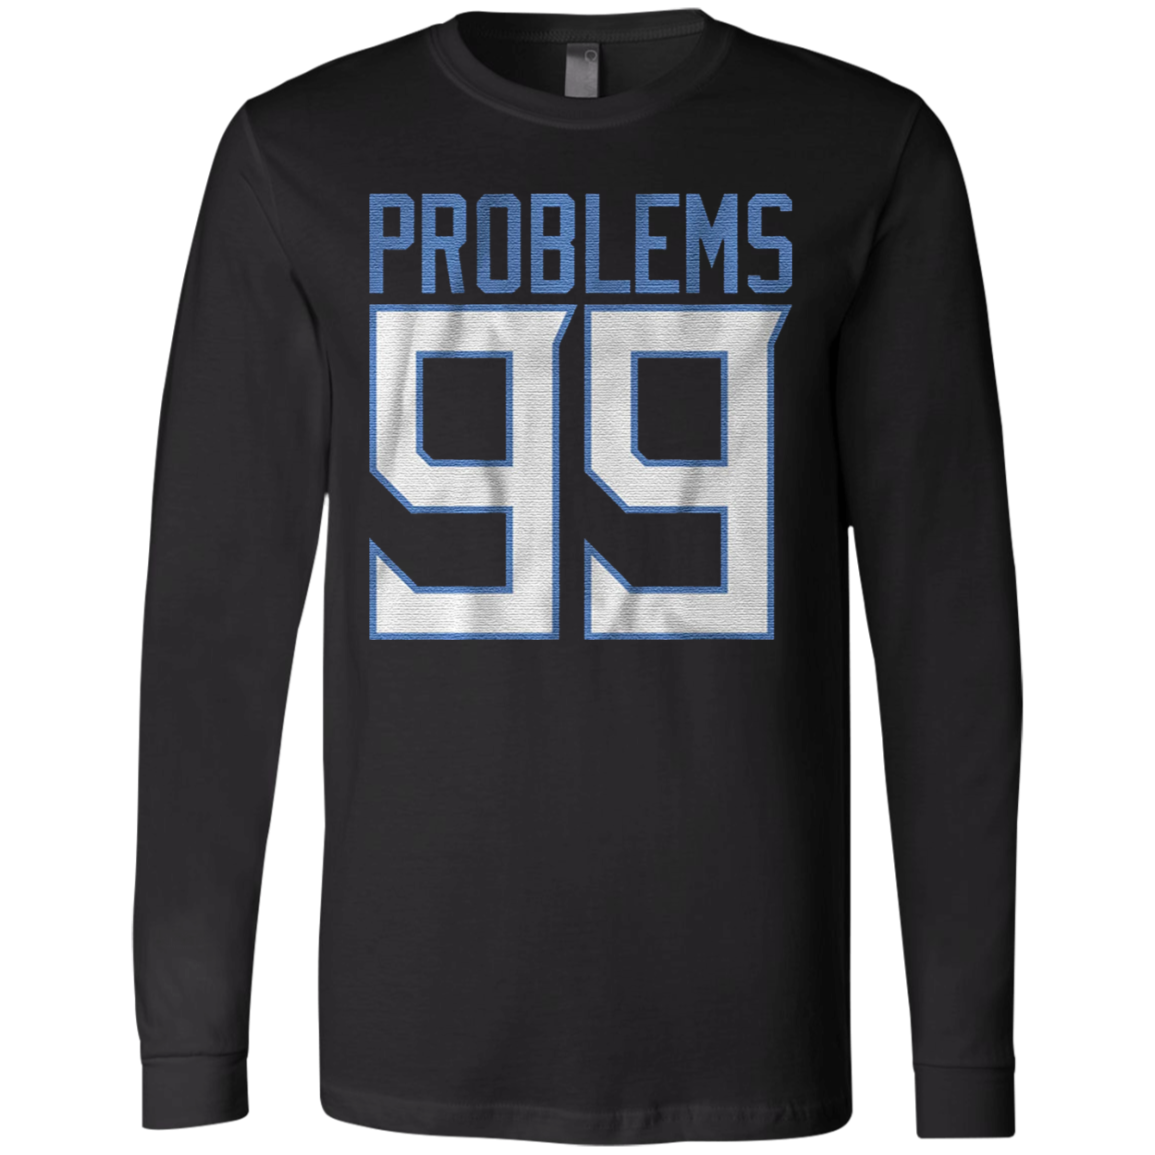 tennessee 99 problems t shirt